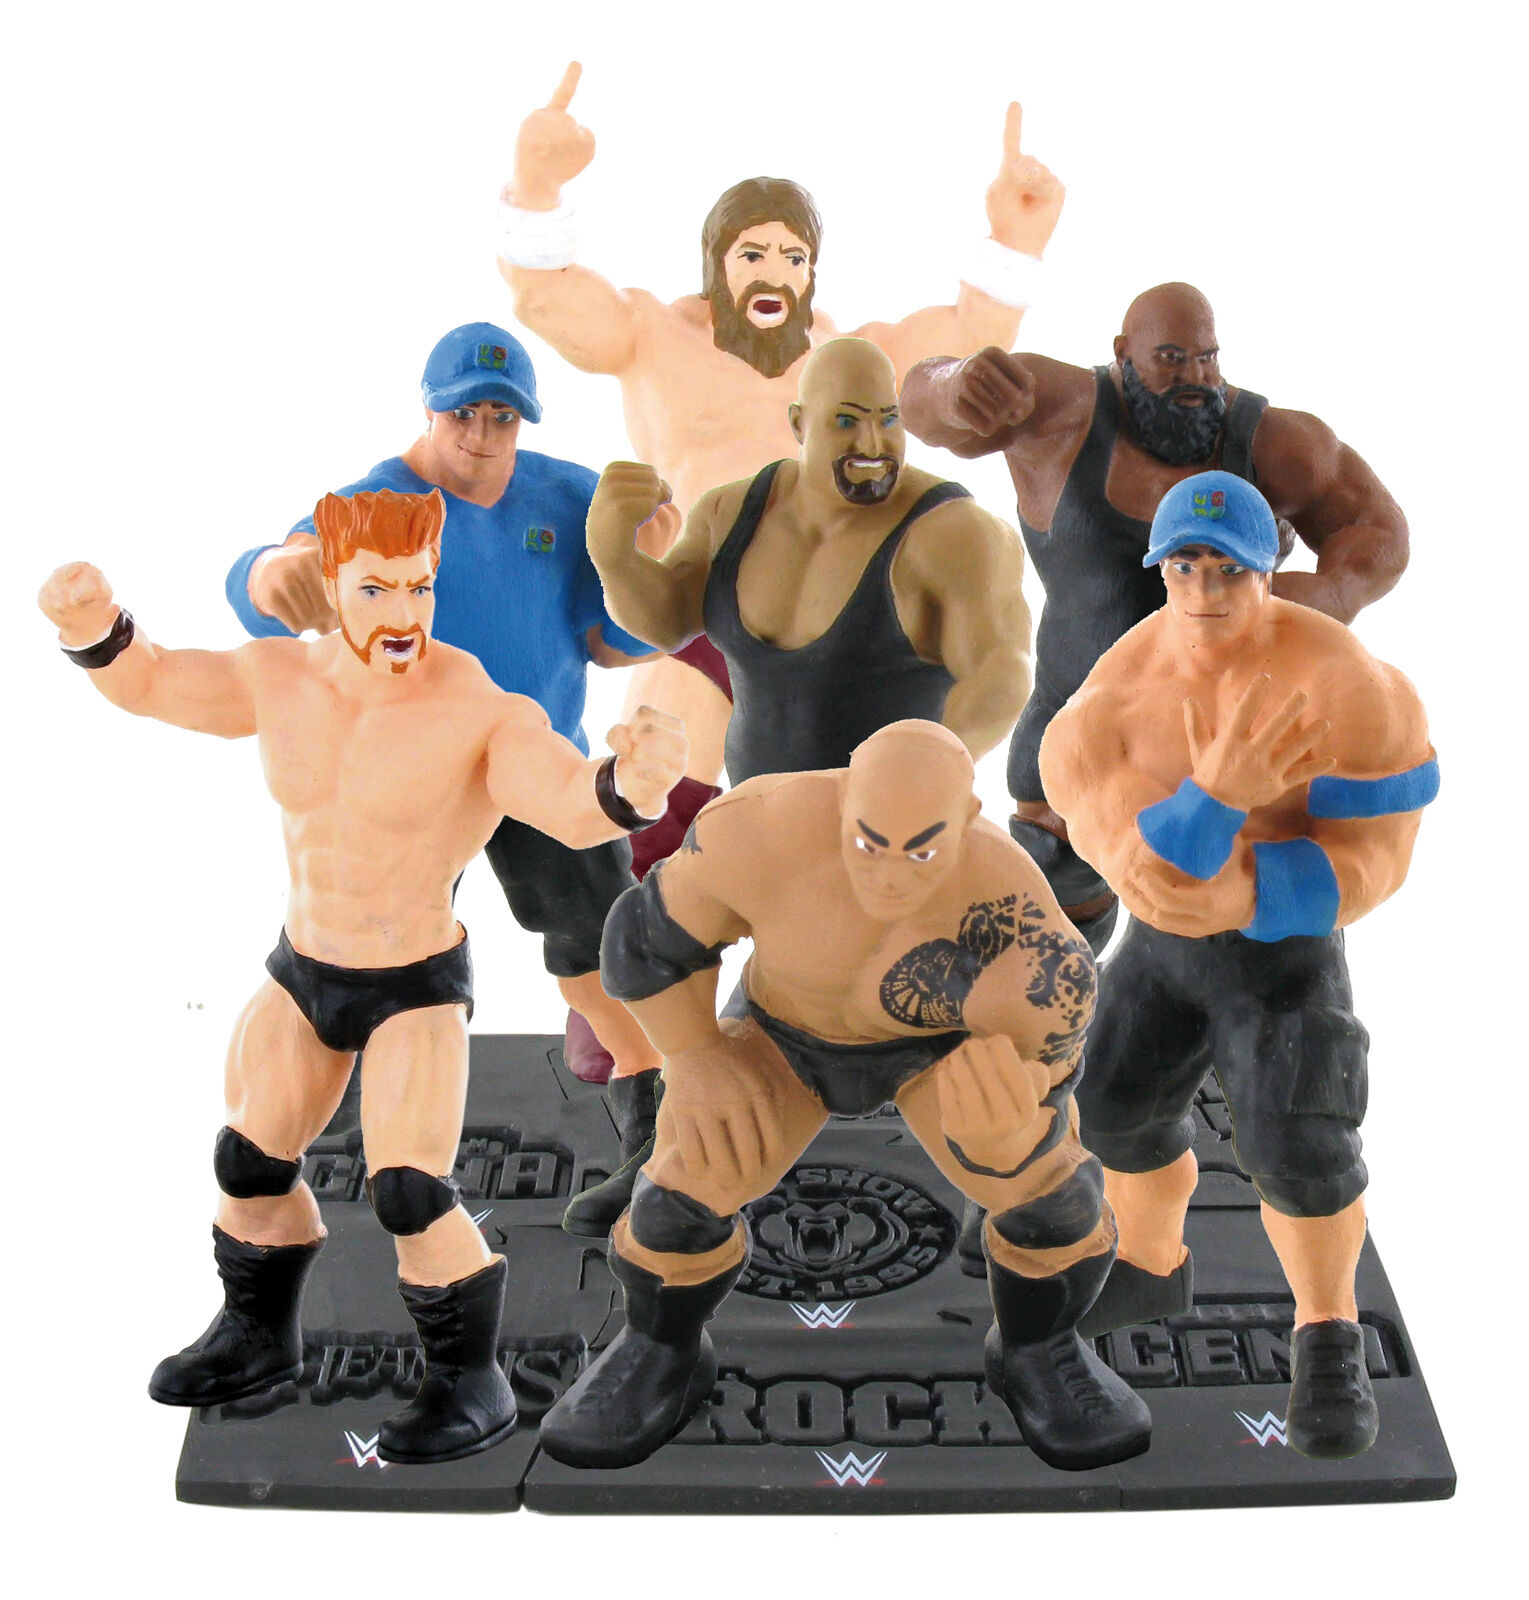 Wwe Wrestling Cake Toppers